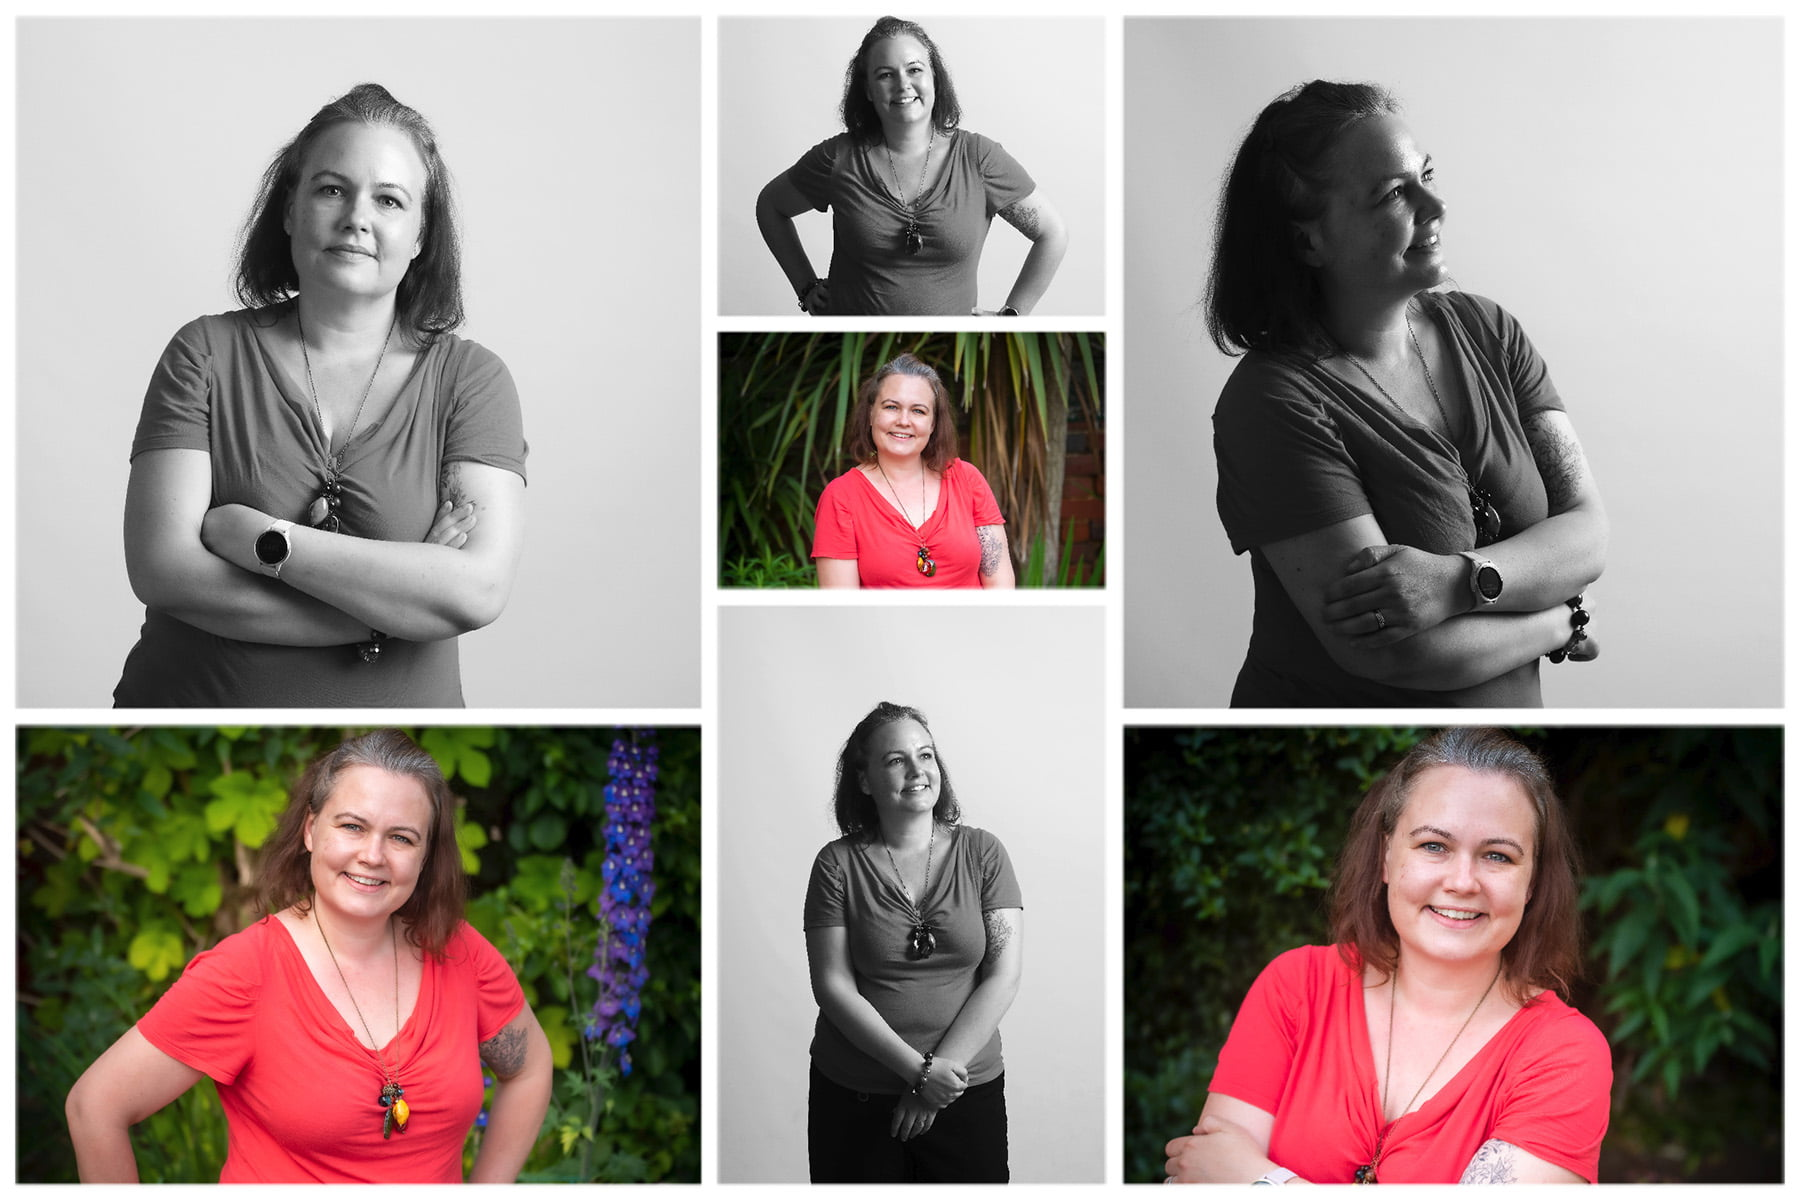 collage of business lady having professional photo shoot